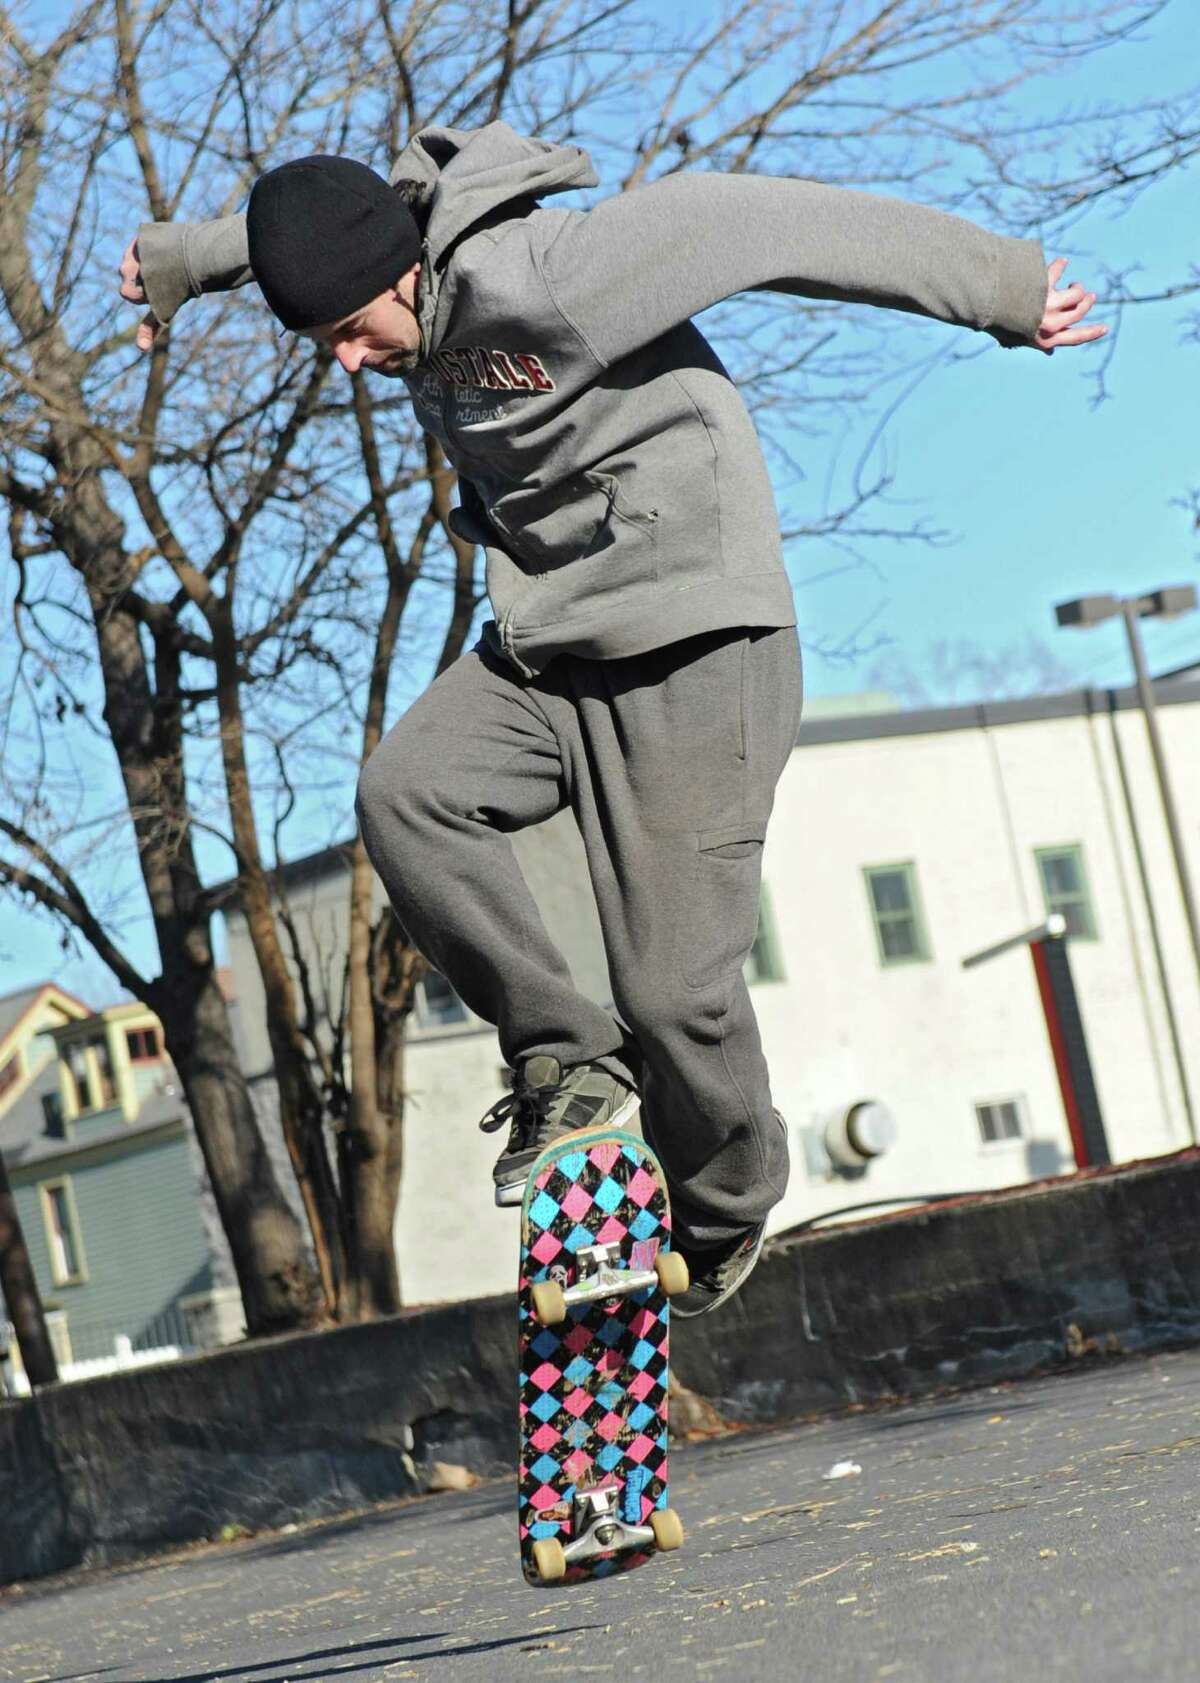 Joe Sankovich of Schenectady performs a trick on his skateboard in a parking lot behind his home on Monday, Nov. 30, 2015 in Schenectady, N.Y. (Lori Van Buren / Times Union)